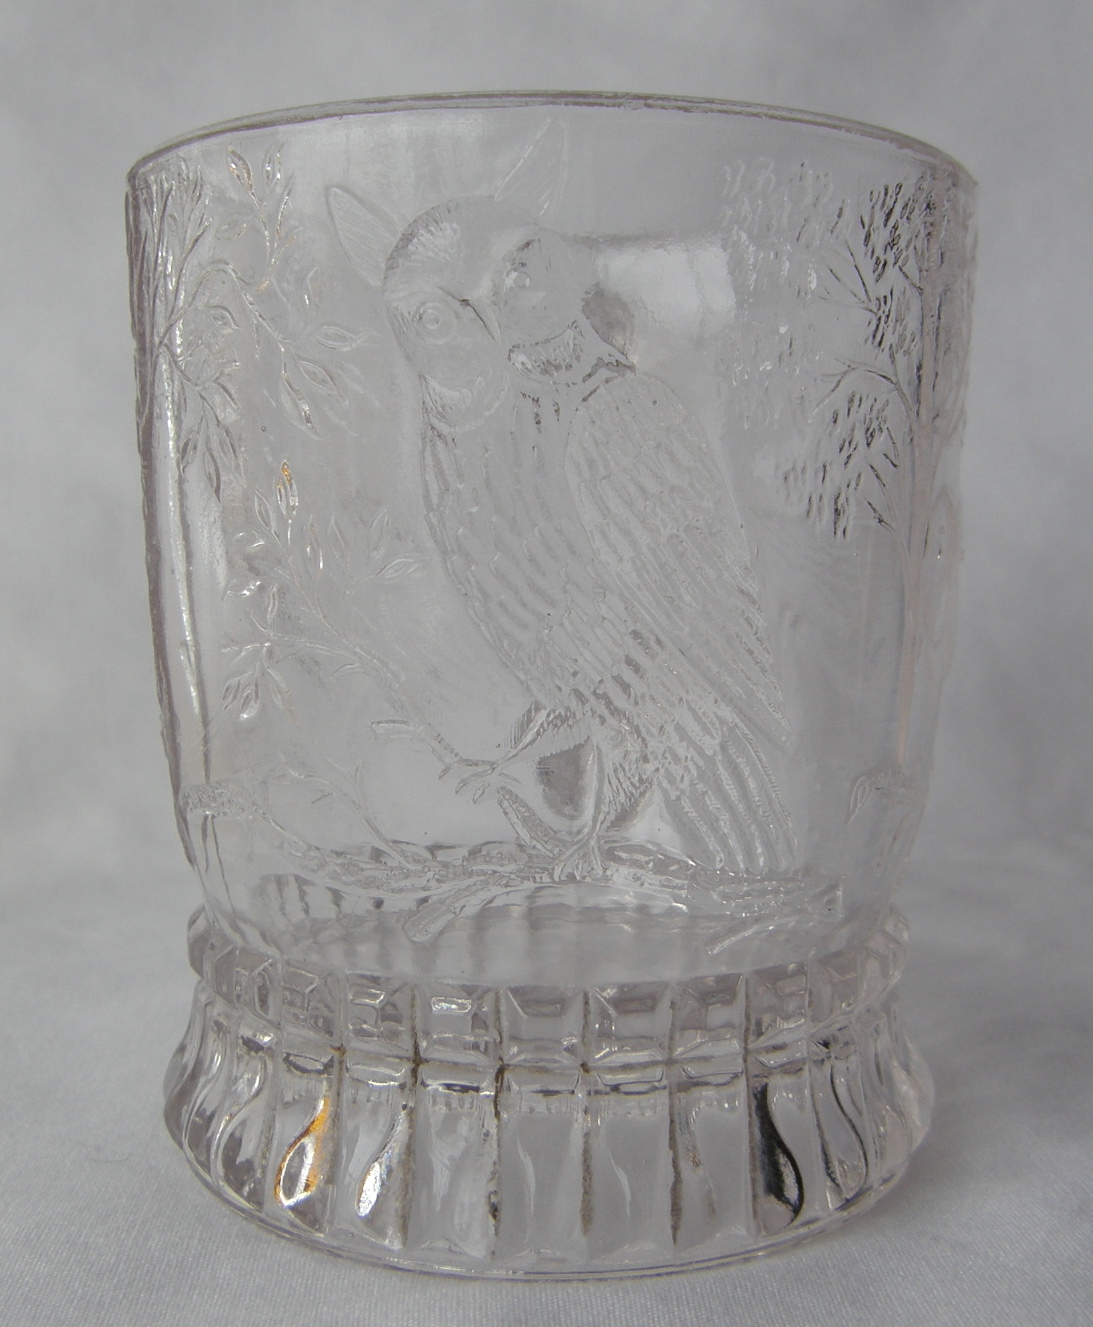 """Bird on a Branch (Size: 2-7/8"""" dia. x 3-3/8"""" ht.; Color: Clear) Directly opposte from the beaded handle, the sculpting shows an on owl perched on a branch."""